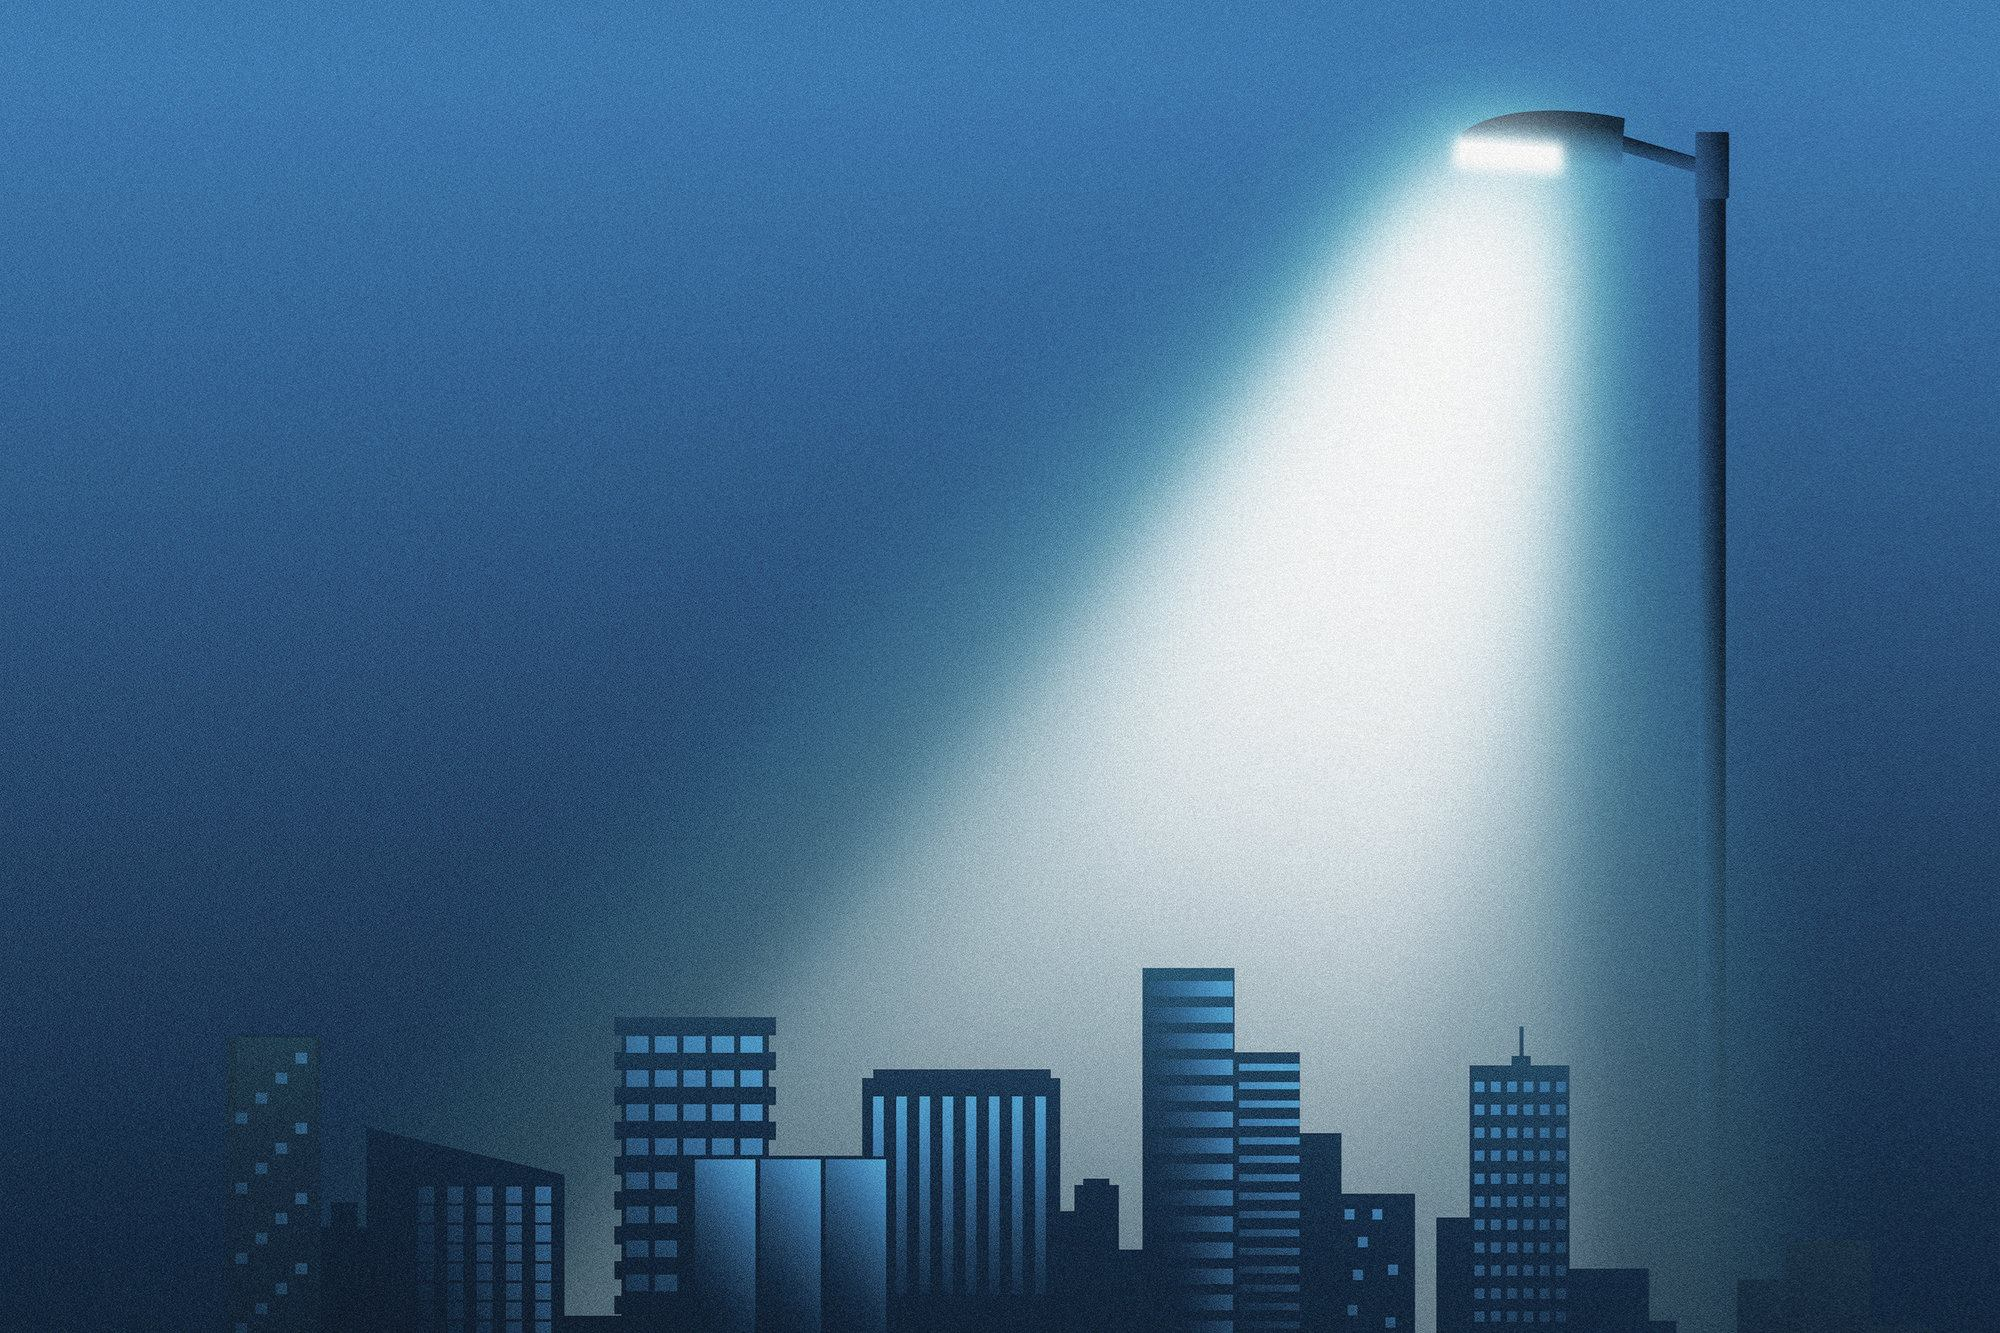 LEDs Make Inroads Into Streetlighting  Architectural